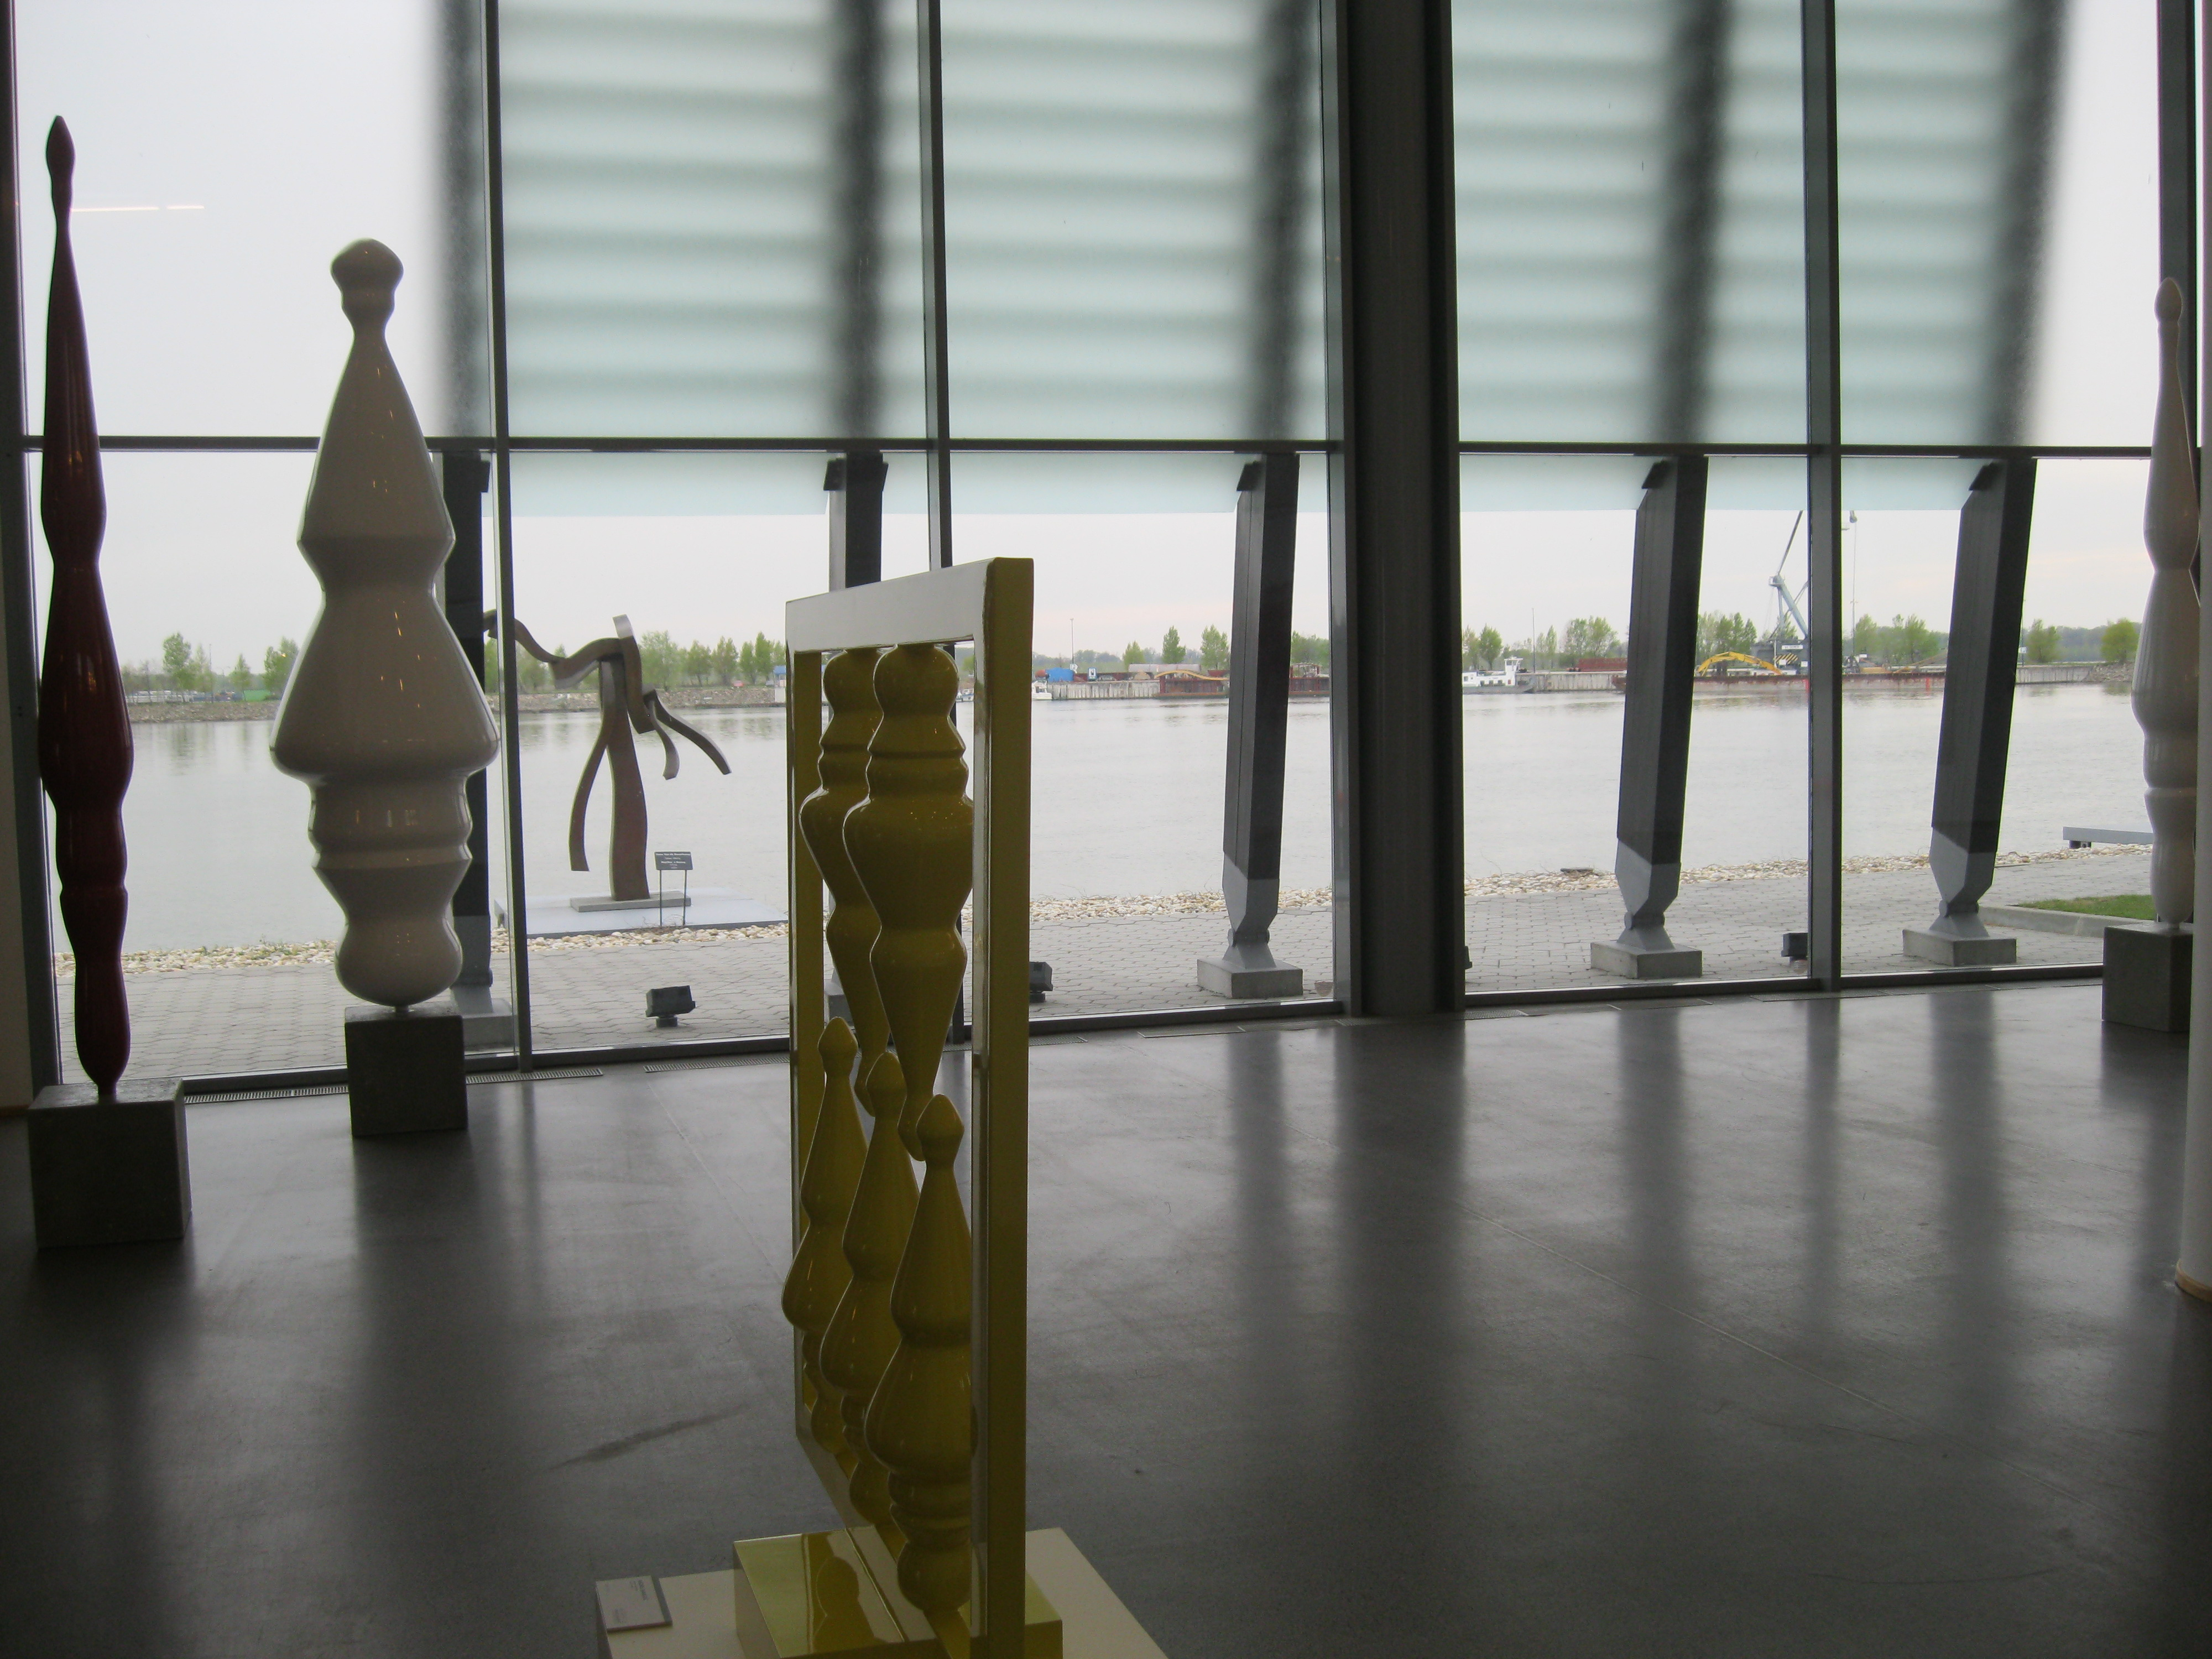 From inside the museum space, looking out at the Danube